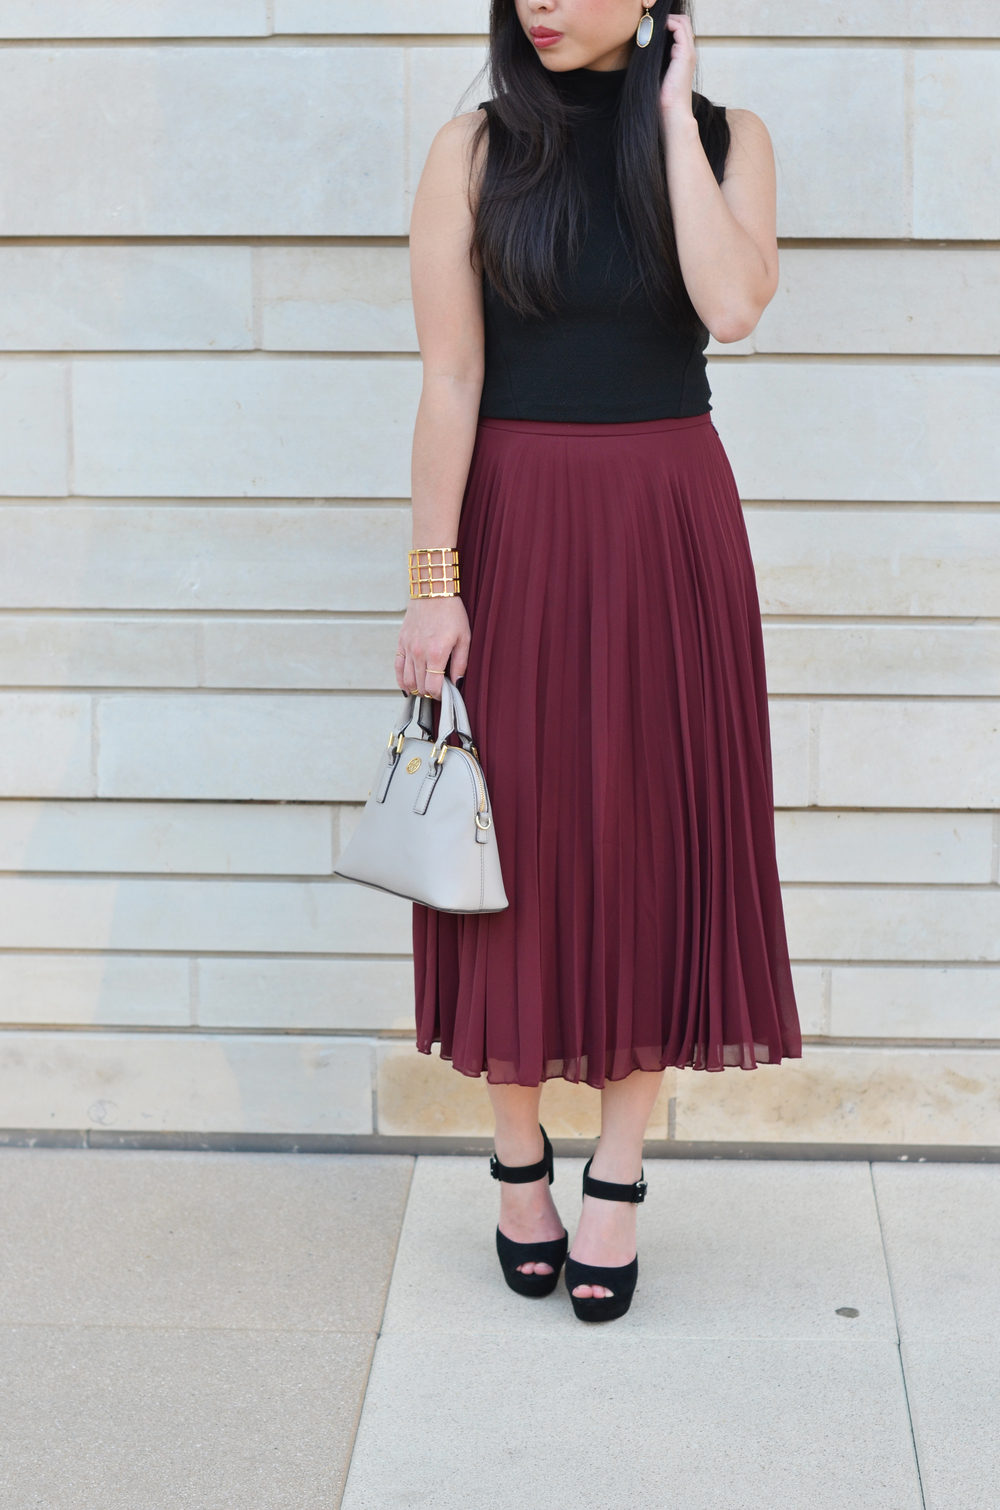 9f3da33548 Burgundy Pleated Skirt - Redskirtz